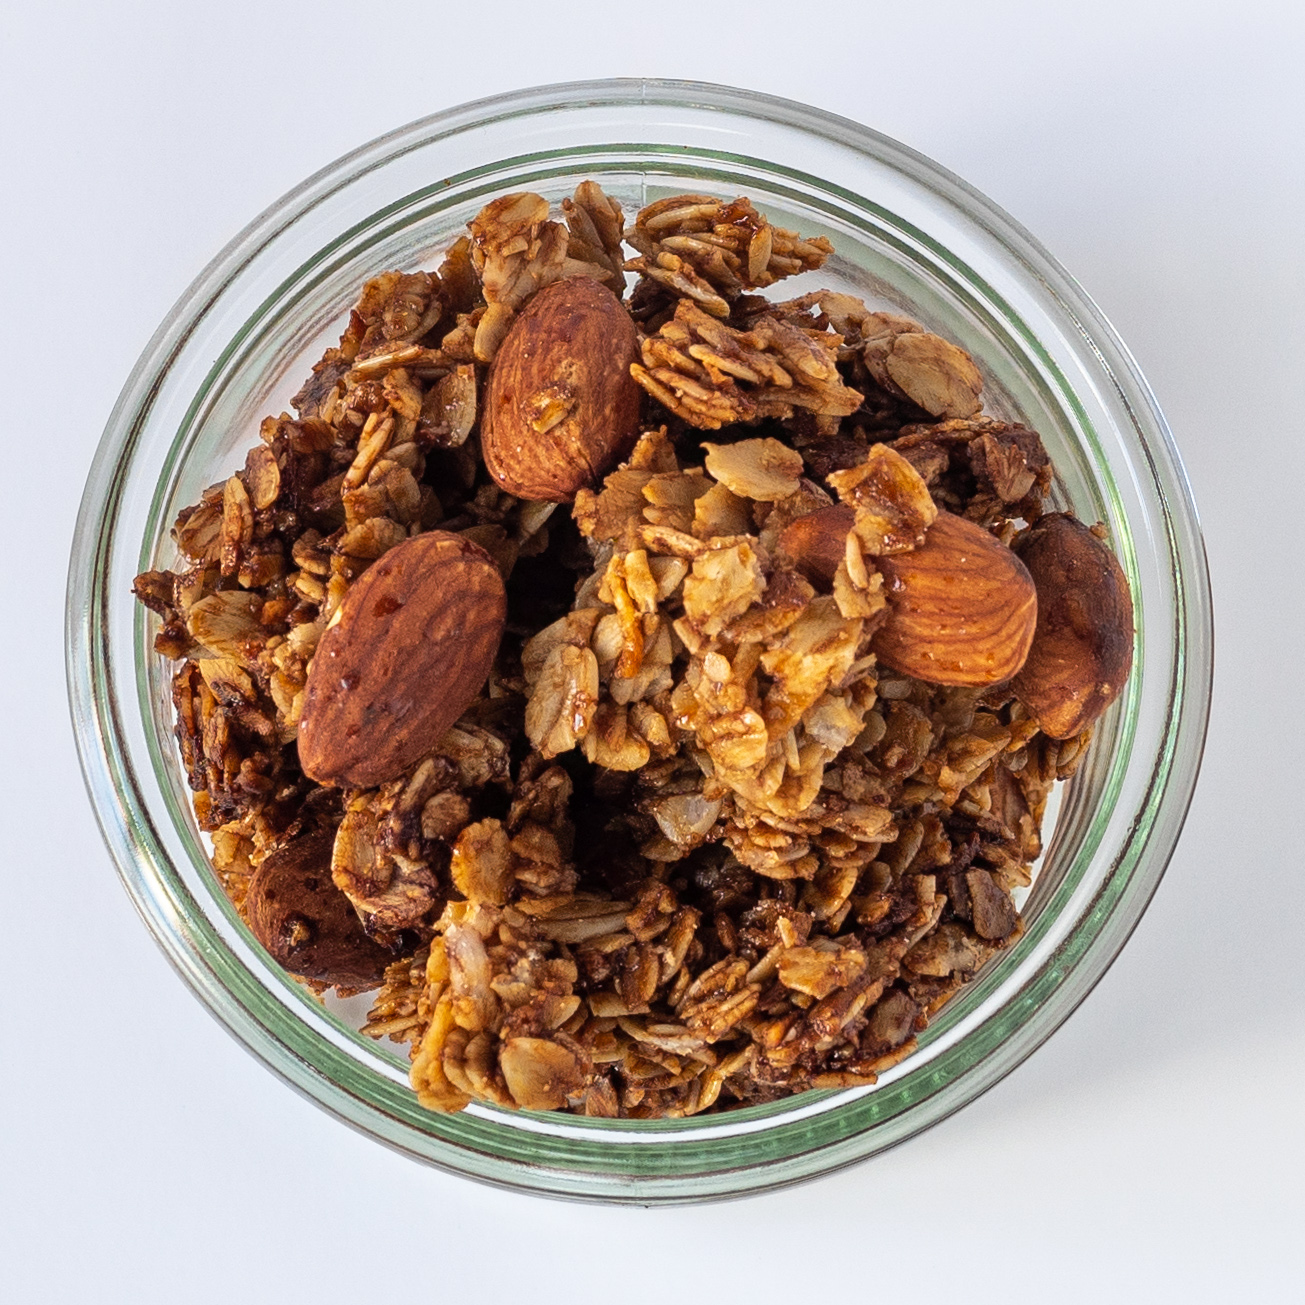 <p>This no-sugar-added granola transforms into ideal clusters for snacking, topping yogurt, or sprinkling on smoothies. Prune Juice Concentrate coats grains and nuts better than brown sugar so the oats caramelize evenly.</p>